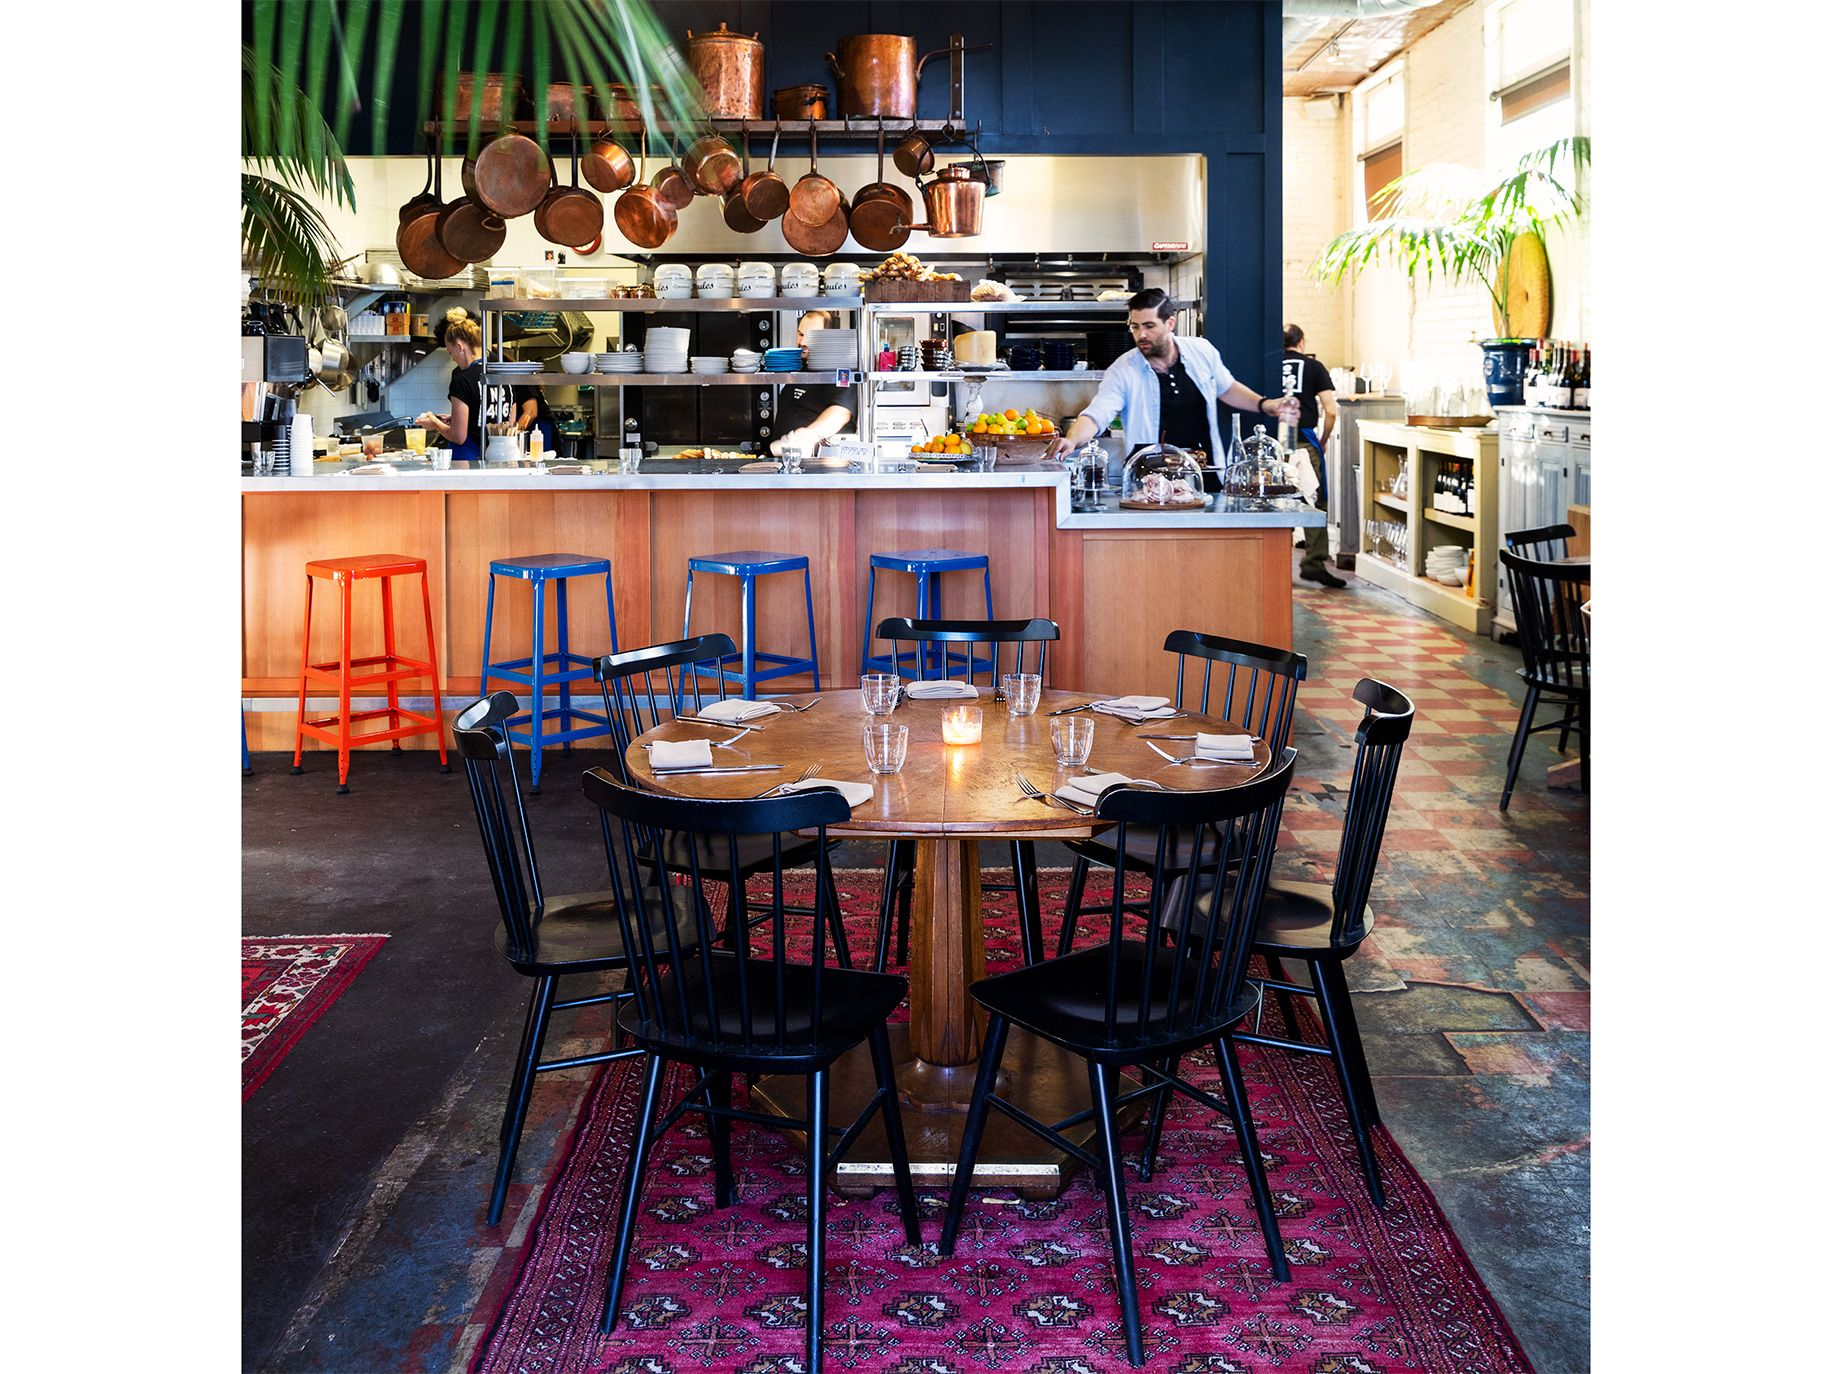 Located in a former Bank of Italy building, the dining room includes exposed brick walls and Oriental rugs partly covering a floor of hardened black tar and old linoleum.